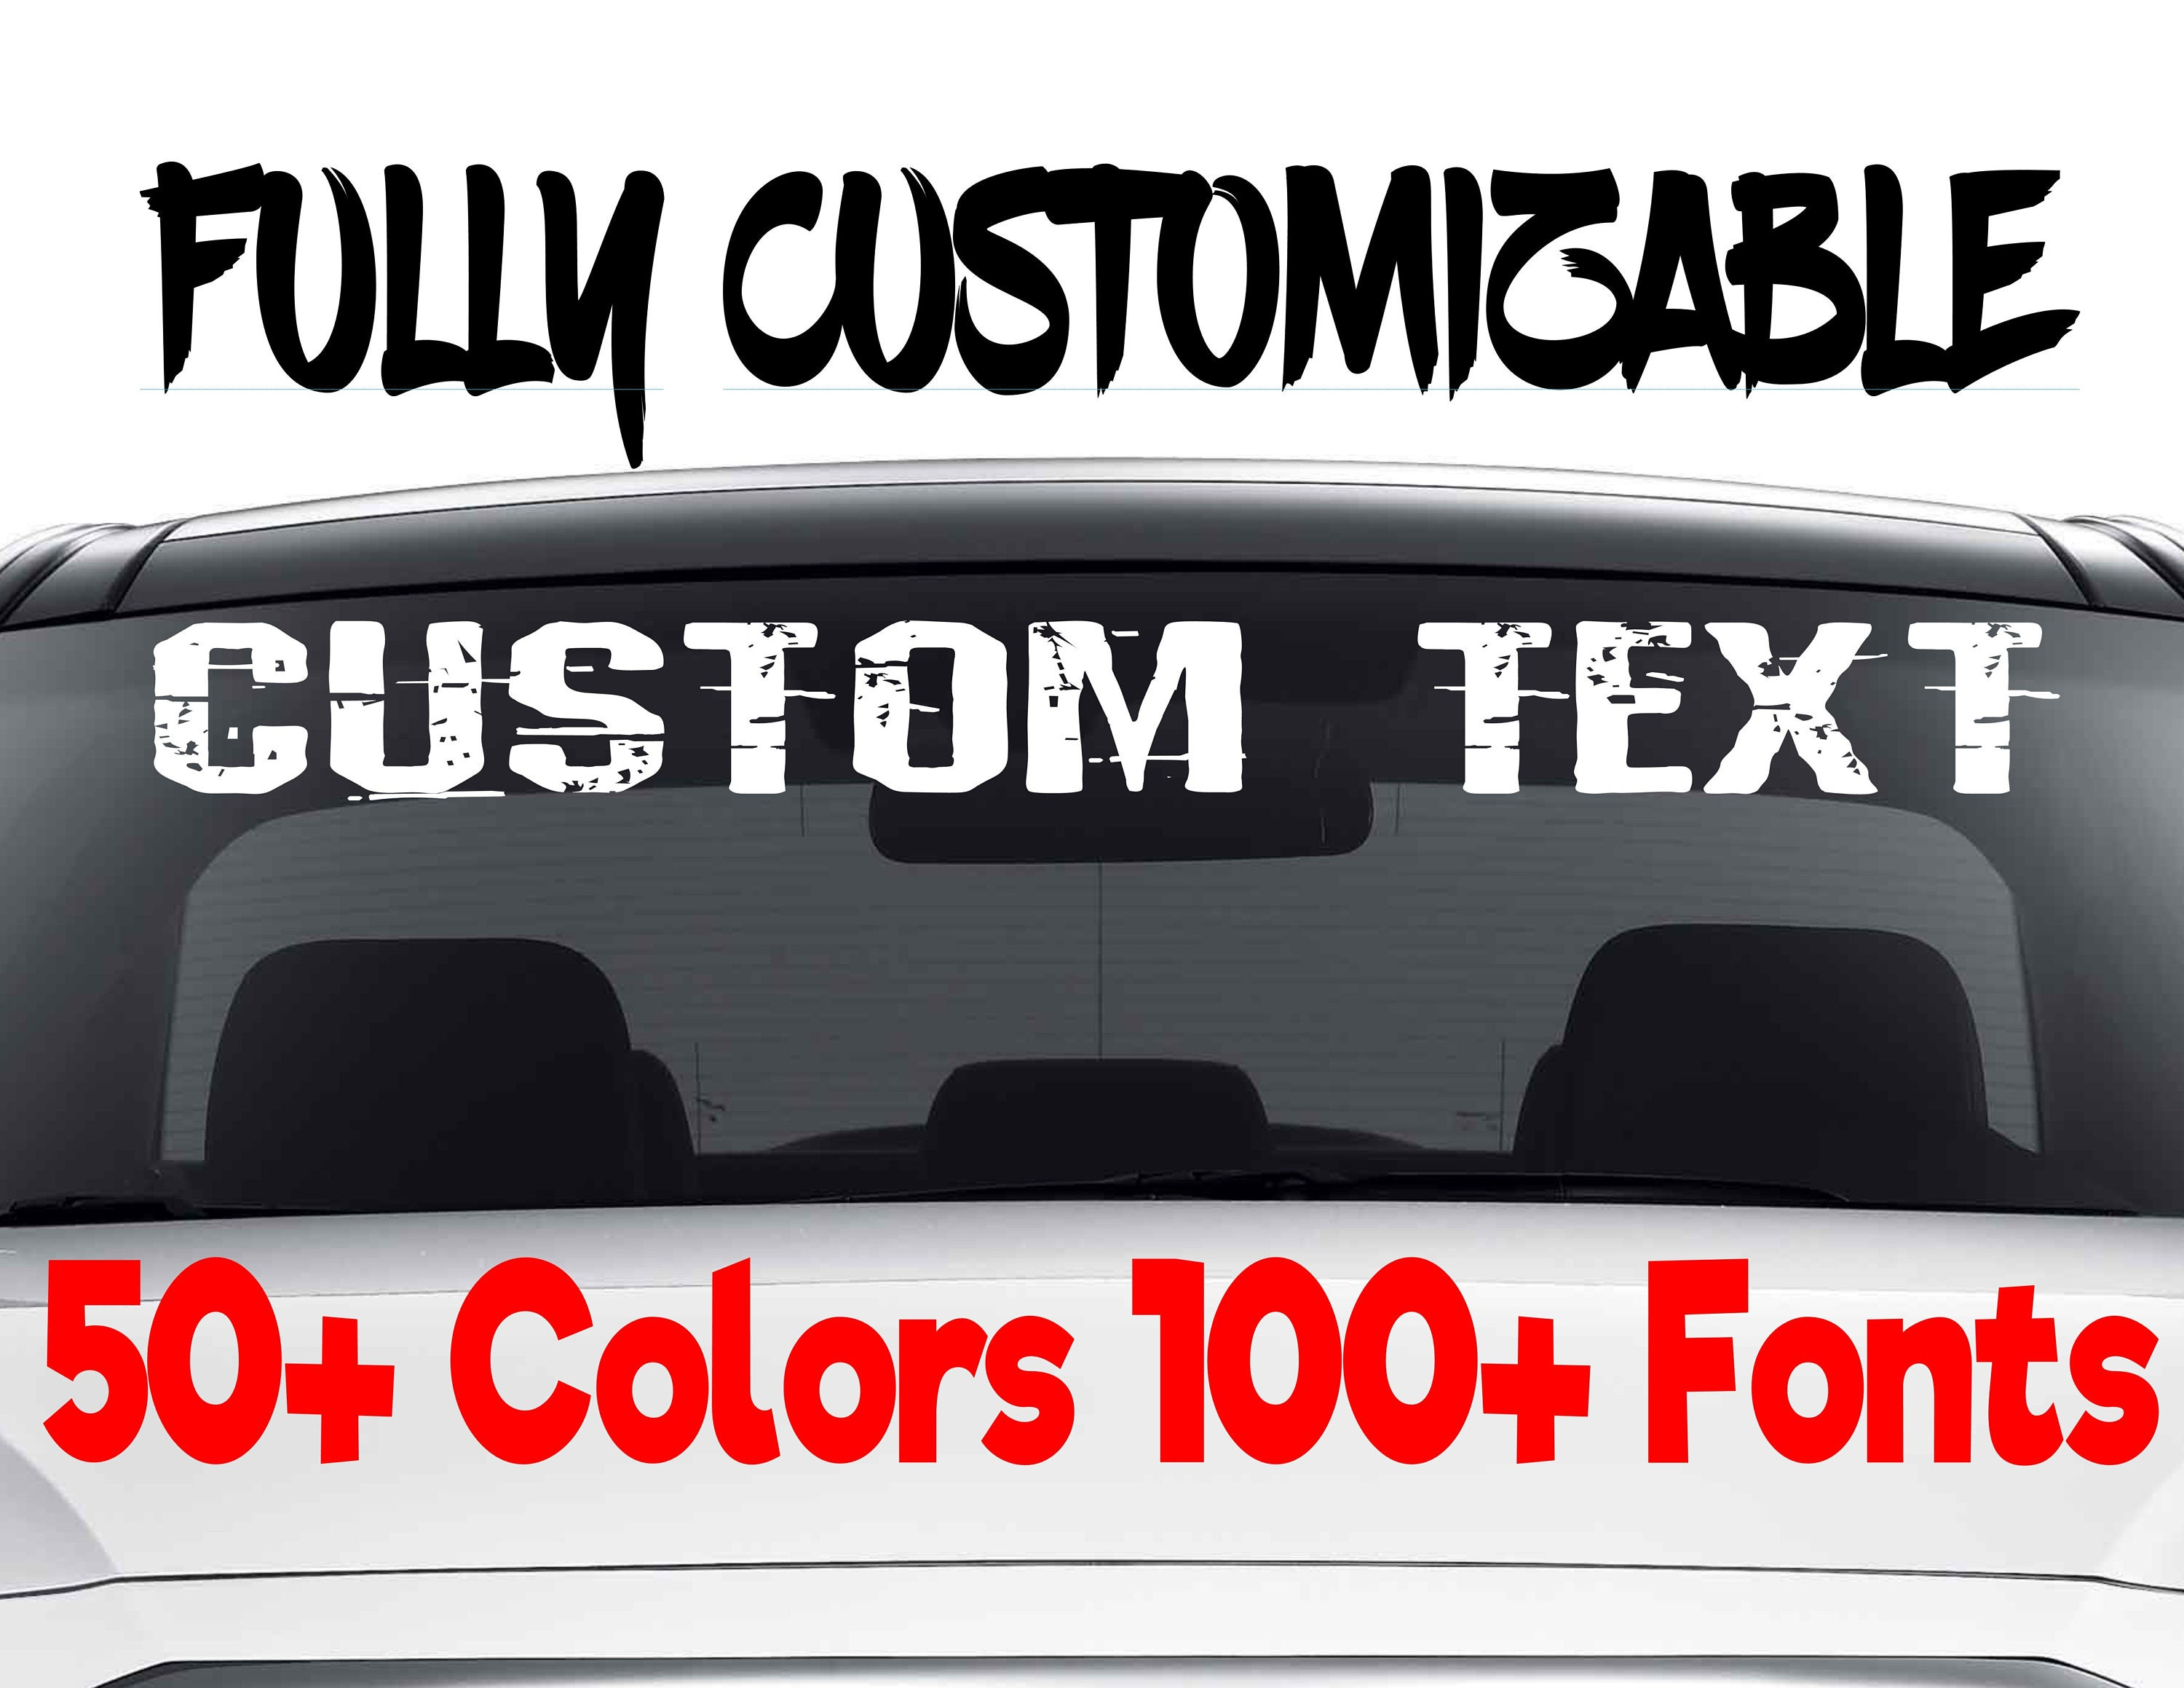 Custom Windshield Decals Word And Number Car Truck Window - Car windshield decals customcustom window decals